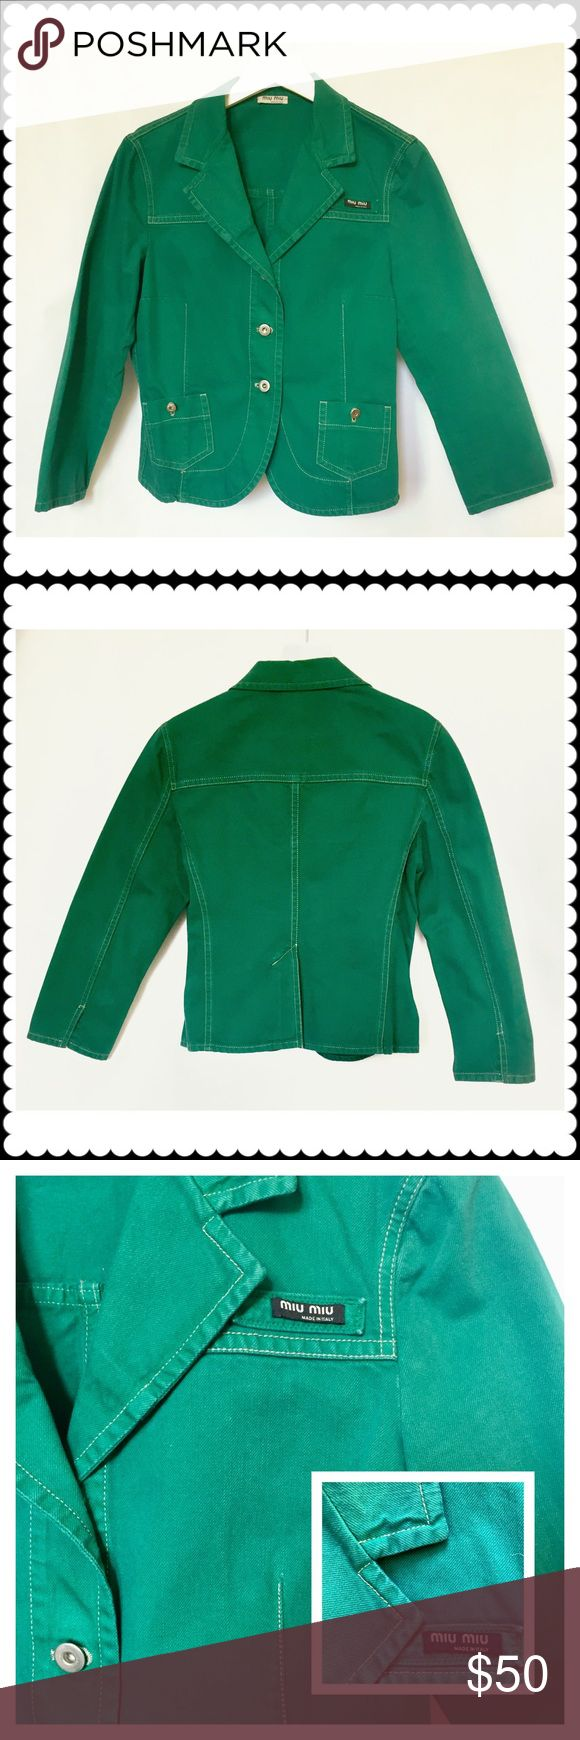 """Miu Miu green cotton jacket Miu Miu green cotton jacket. Worn and dry cleaned. There were stitches broken on one of arm. I fixed it by hand not to spread as seen on the last 3 photos. It's easy to fix better by sewing machine or by tailors. Price reflects this. It said XL but runs small. Shoulder is about 15.5"""". Chest about 18.5"""". Sleeve about 20"""". Miu Miu Jackets & Coats Blazers"""